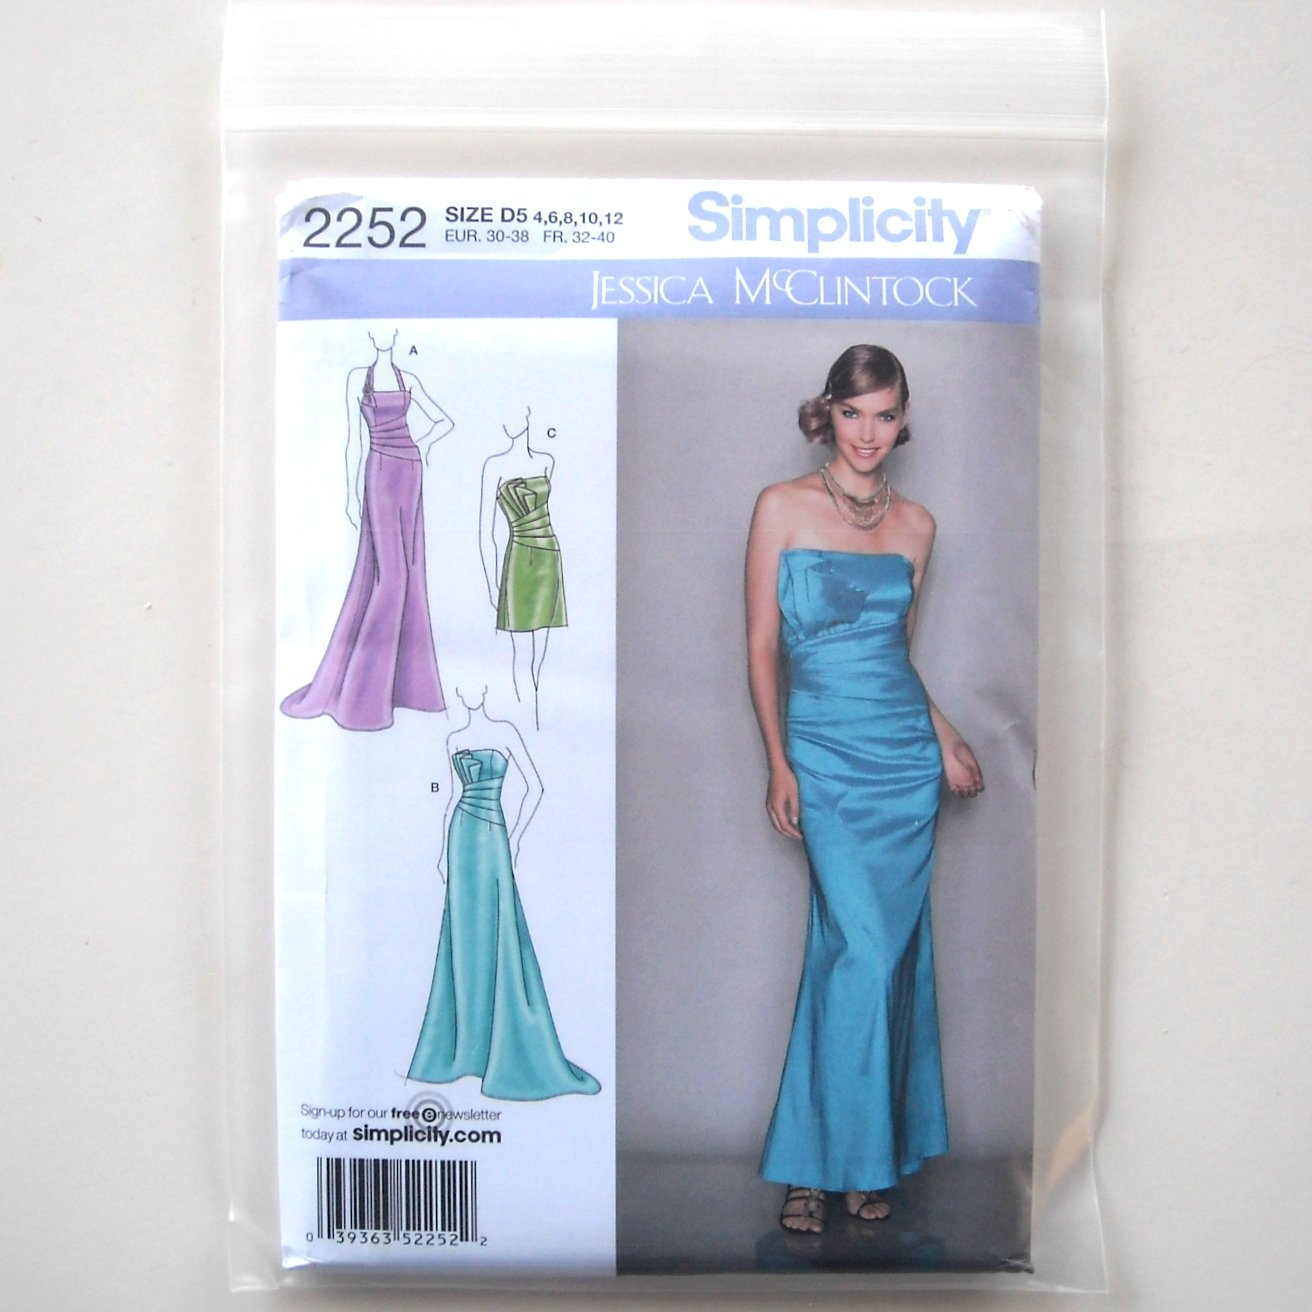 Simplicity Pattern 2252 Size 4 - 12 Jessica McClintock Collection Misses Evening Dresses